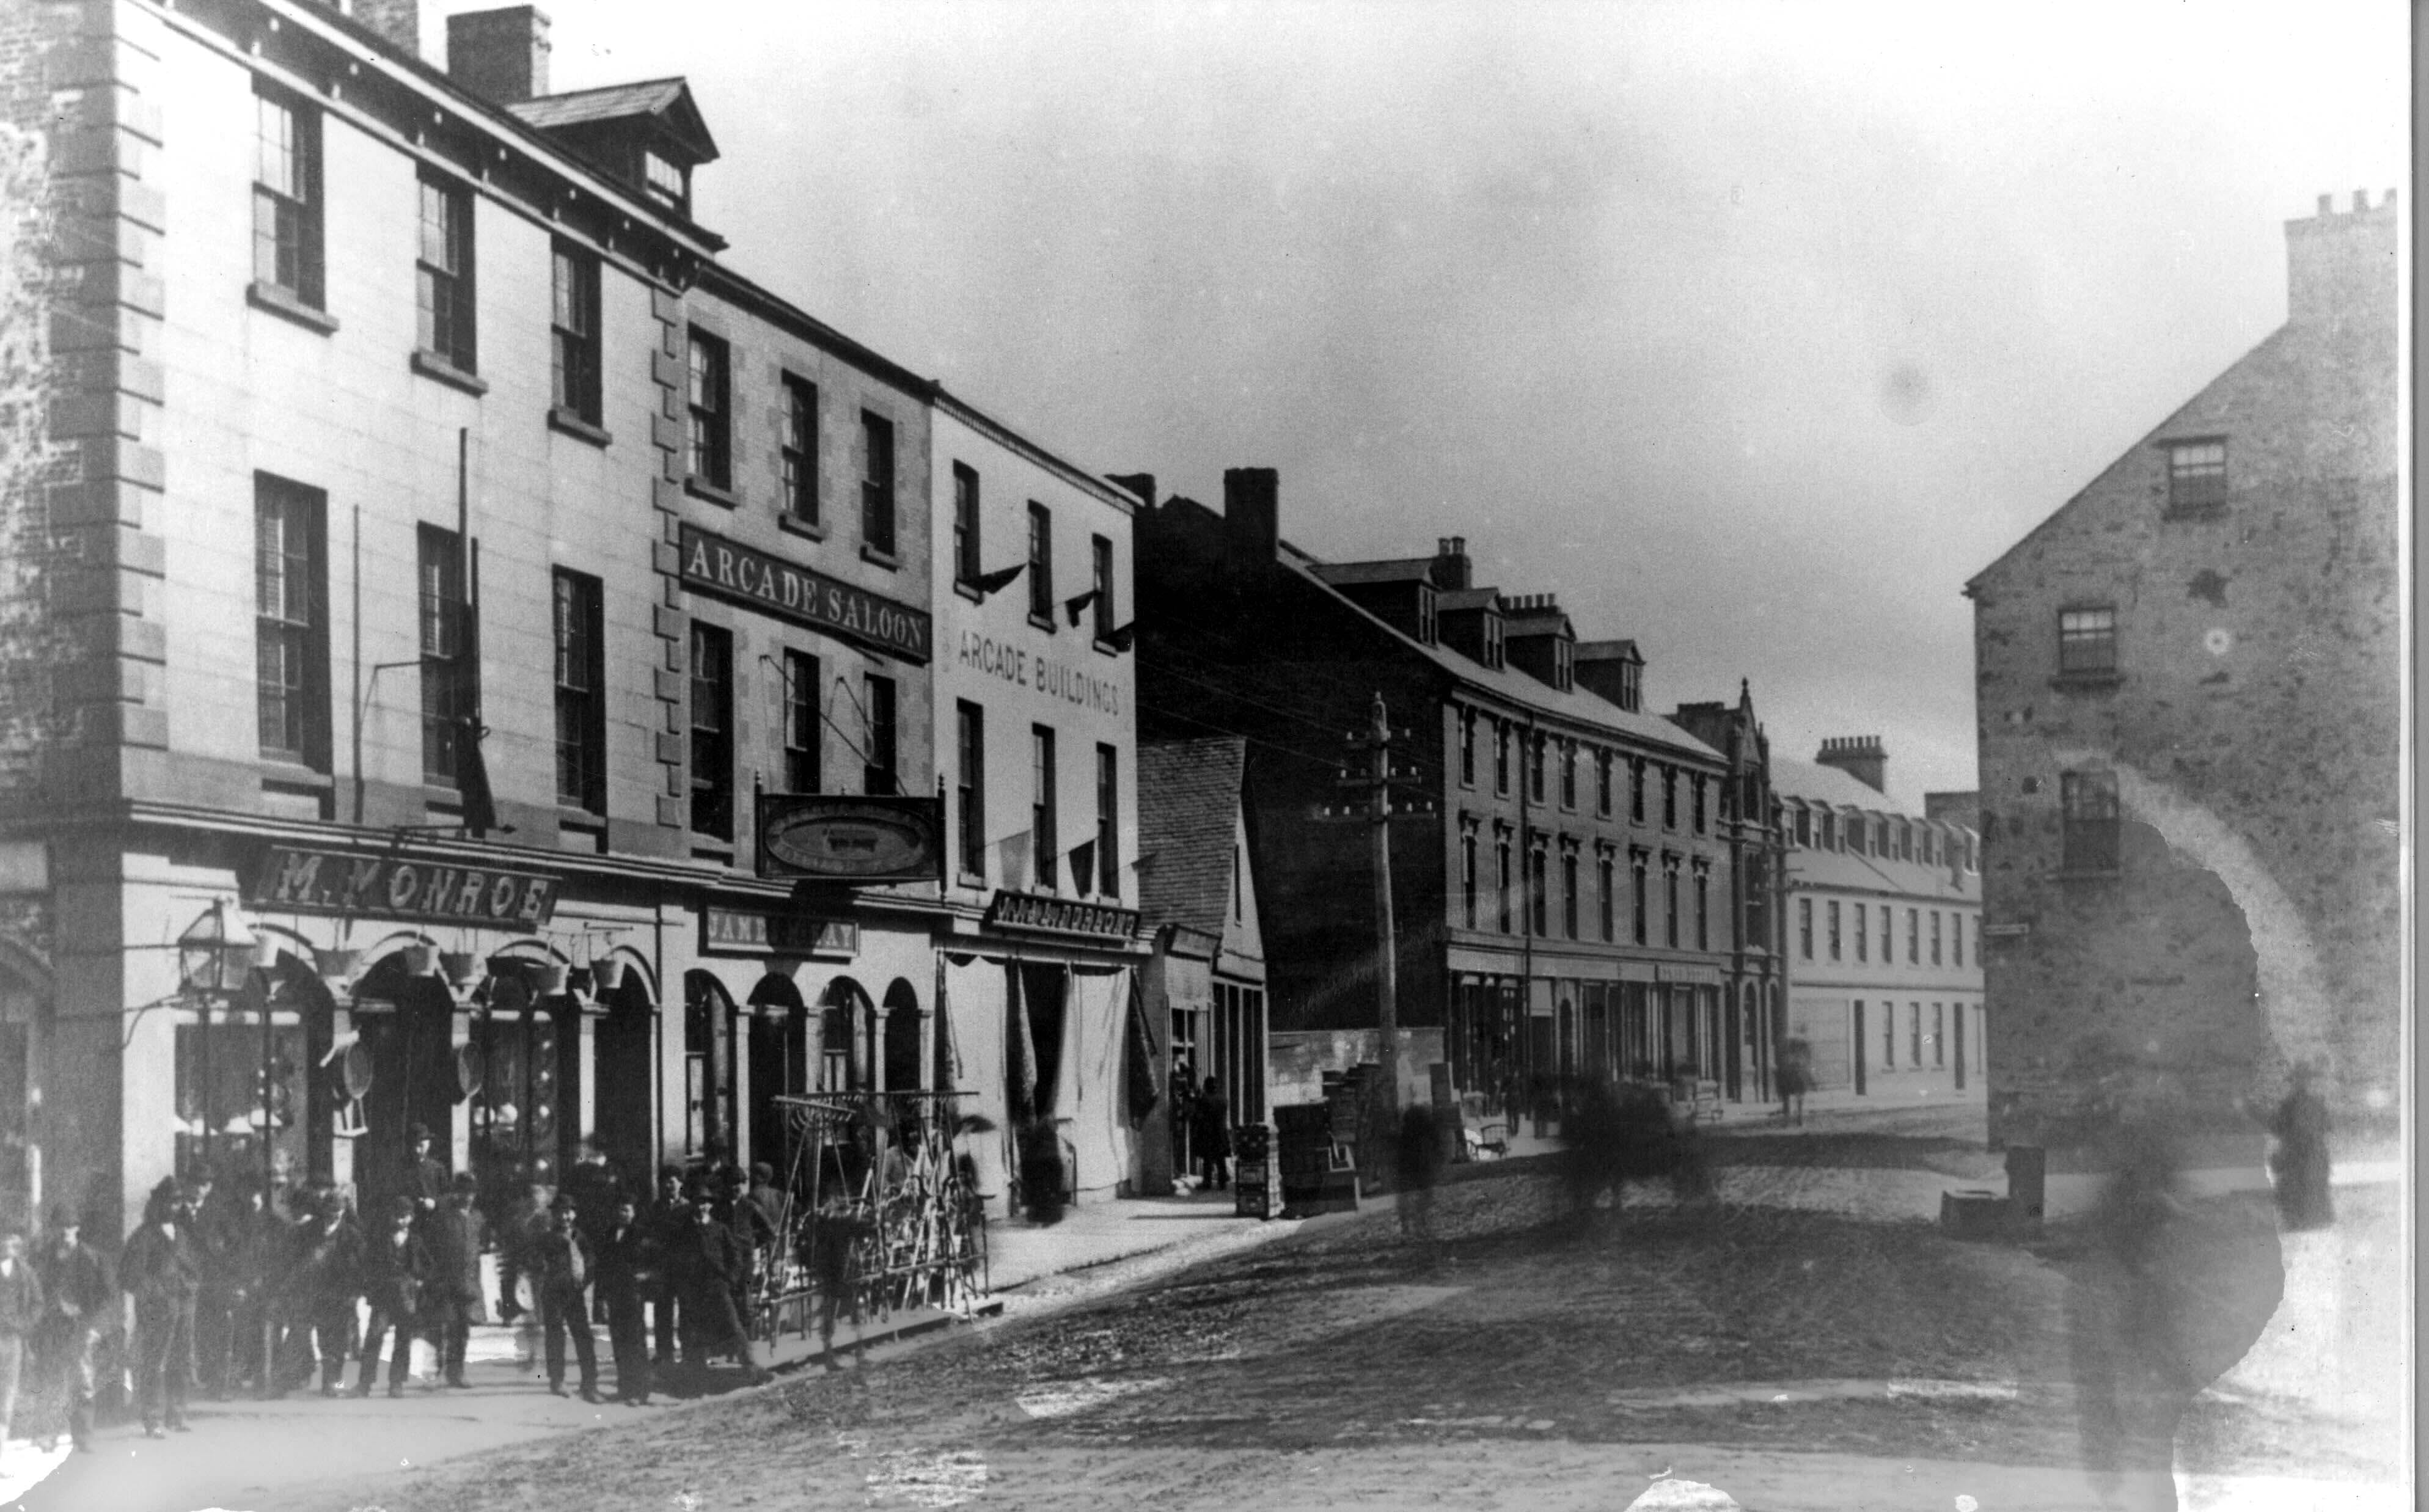 1880's: Water Street west looking west from the Arcade building